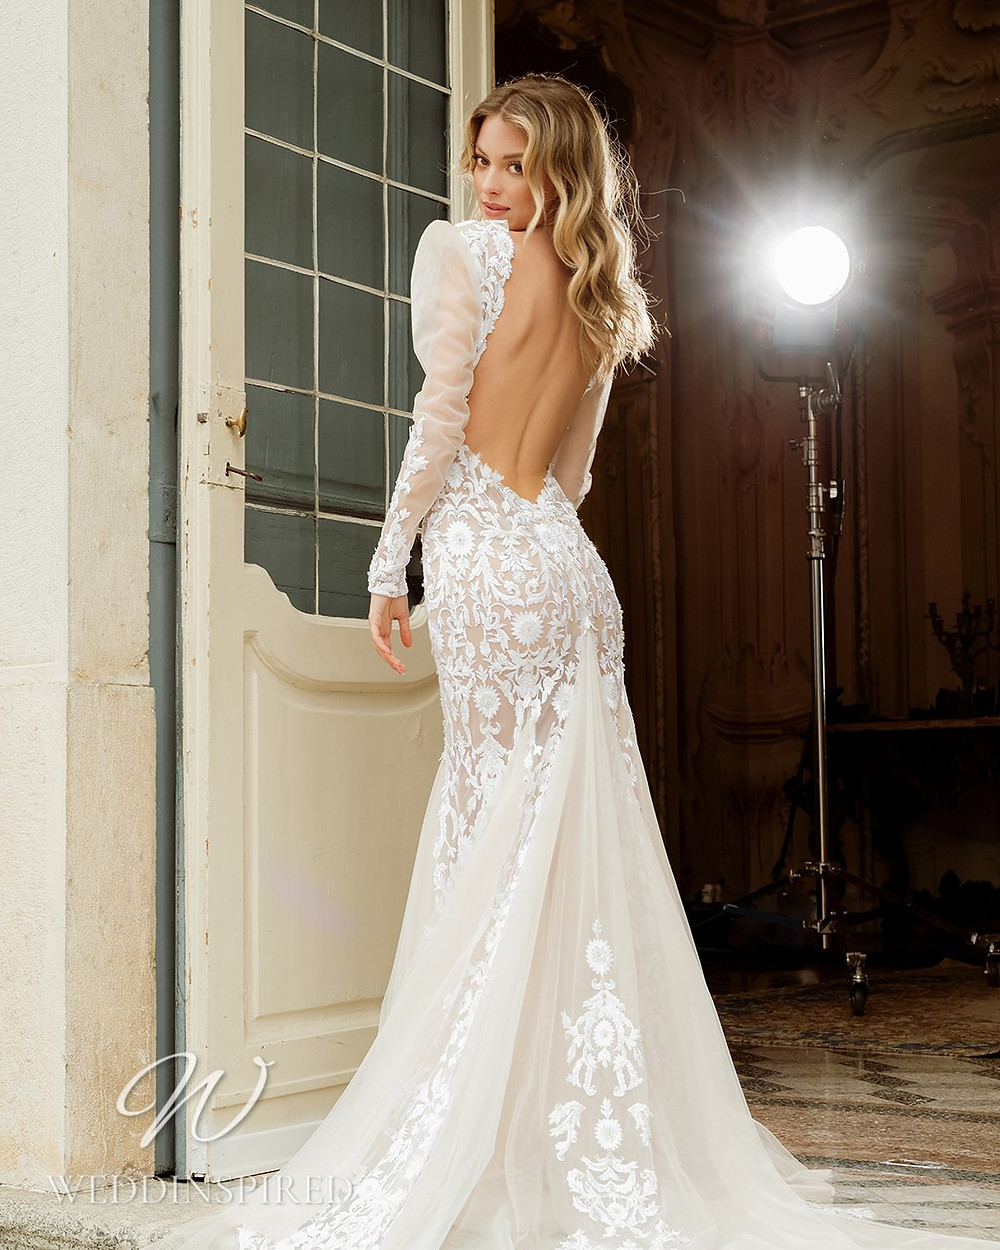 A Berta 2022 lace and tulle mermaid wedding dress with long sleeves